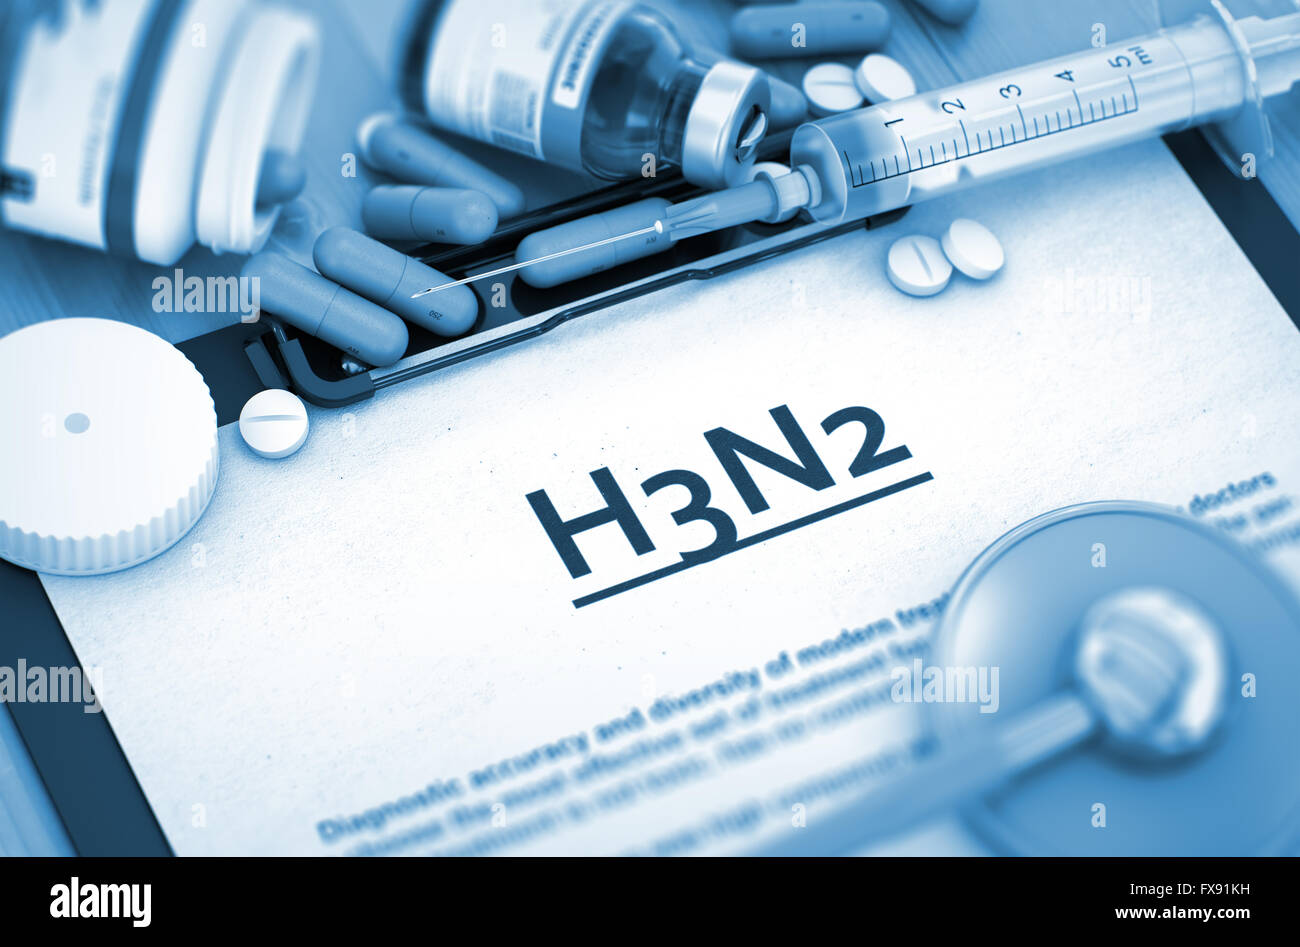 H3N2 Diagnosis. Medical Concept. - Stock Image